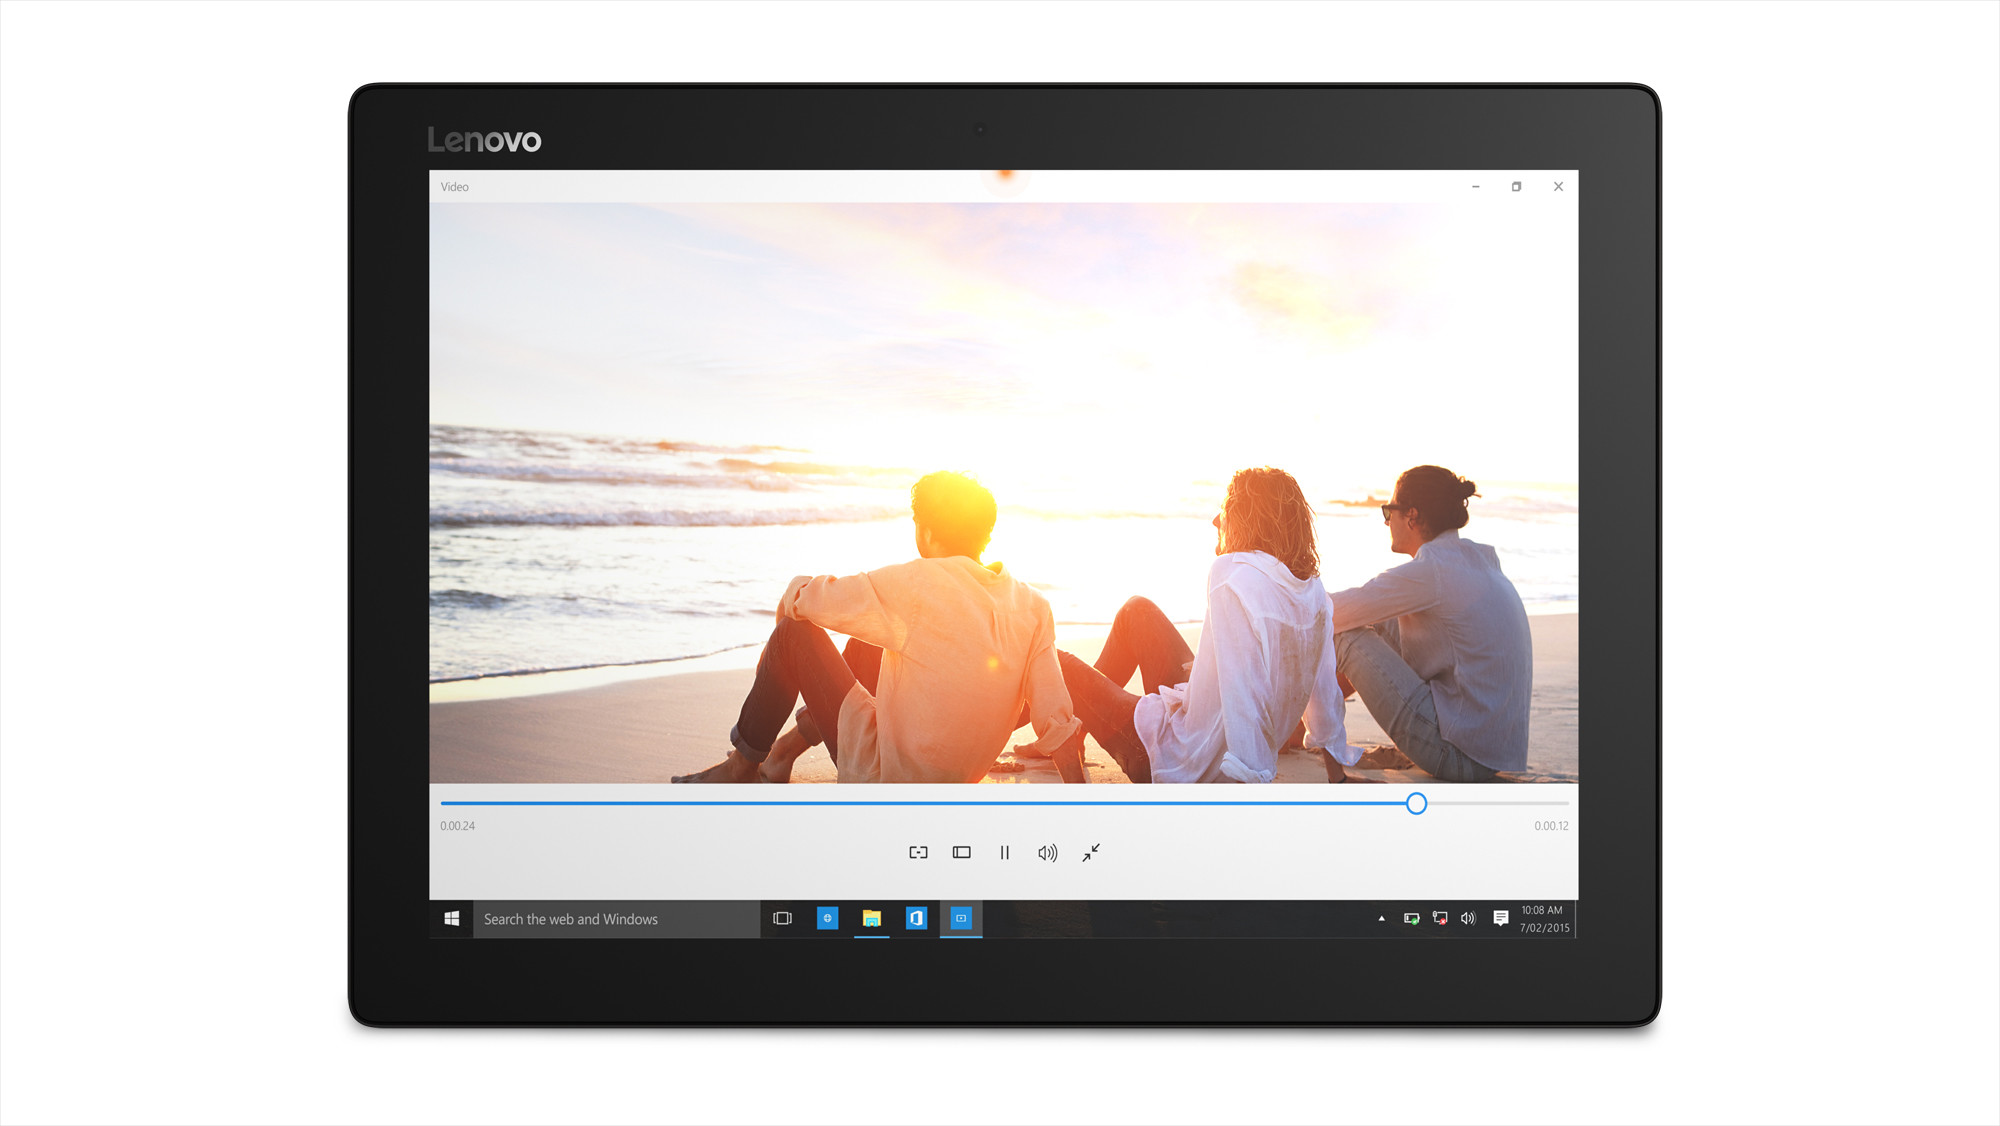 "Lenovo Miix 700 12"" FHD/6Y30/128GB/4GB/Win 10 Home"